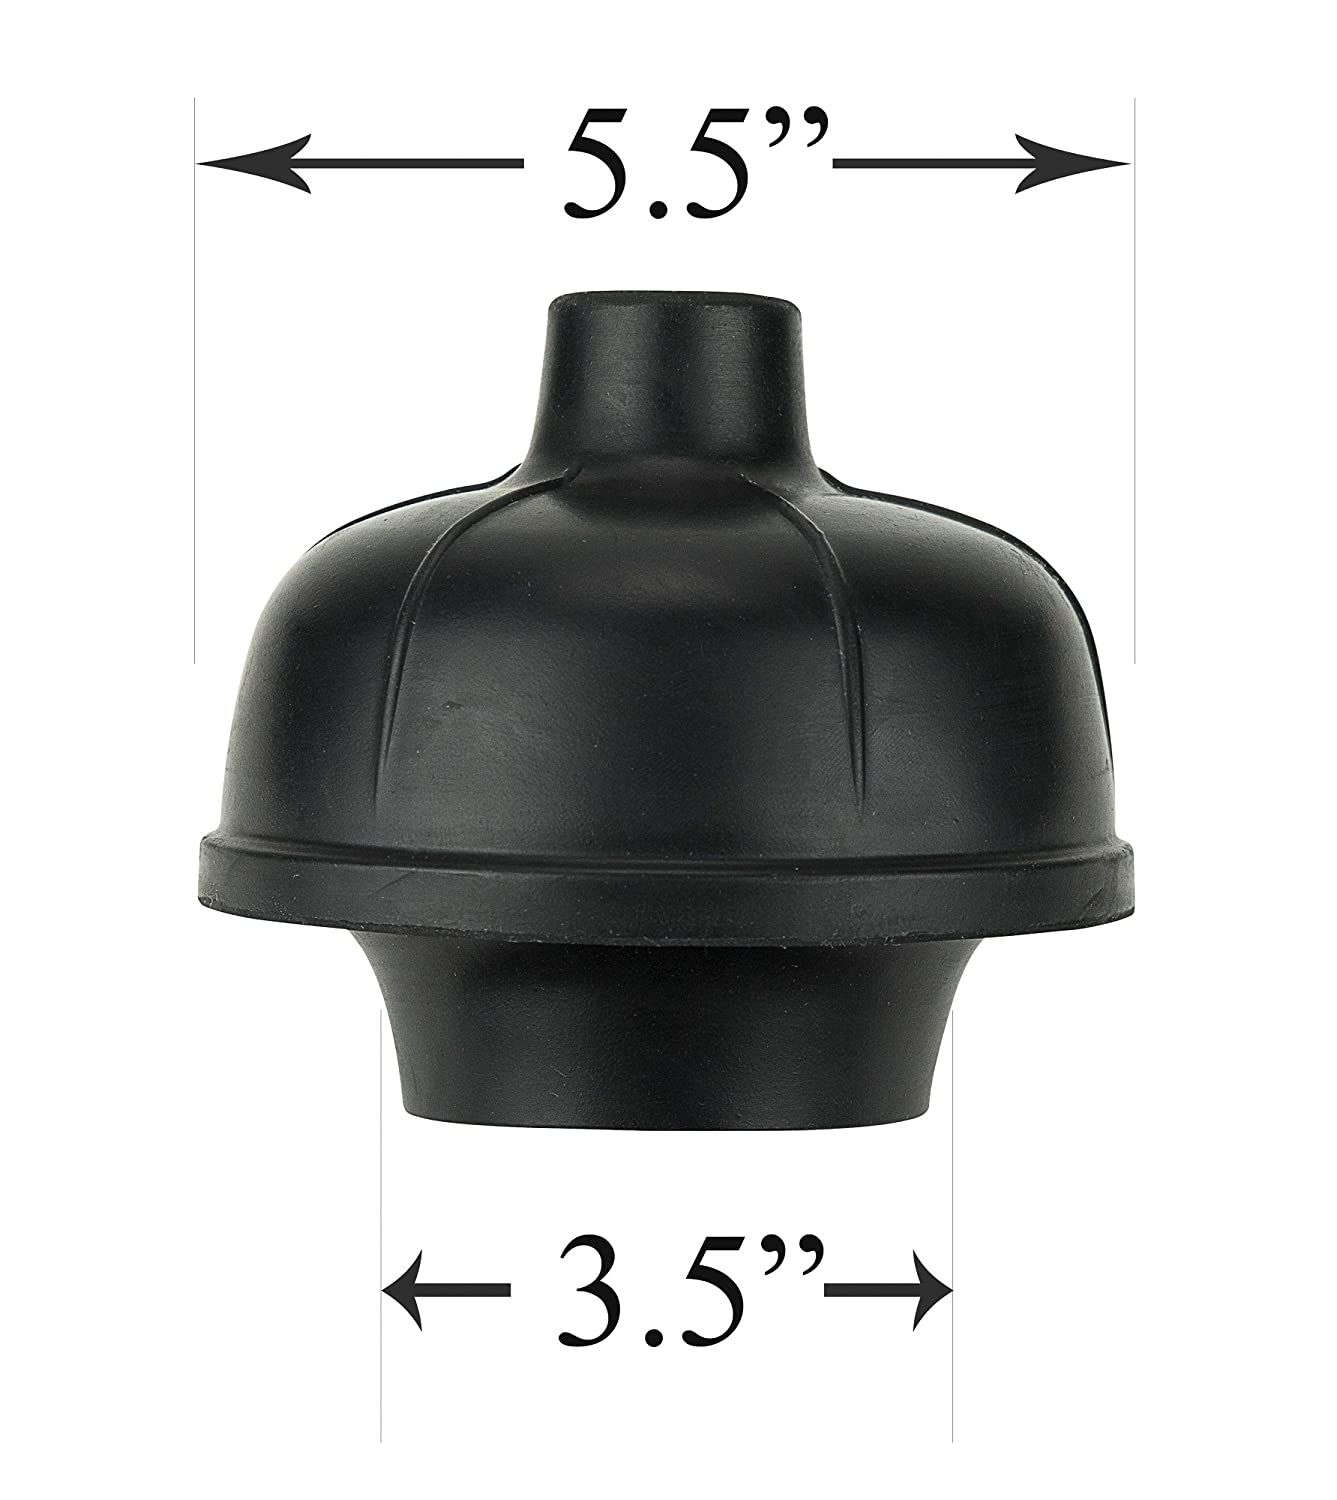 SteadMax Rubber Toilet Plunger, Double Thrust Force Cup, Heavy Duty ...